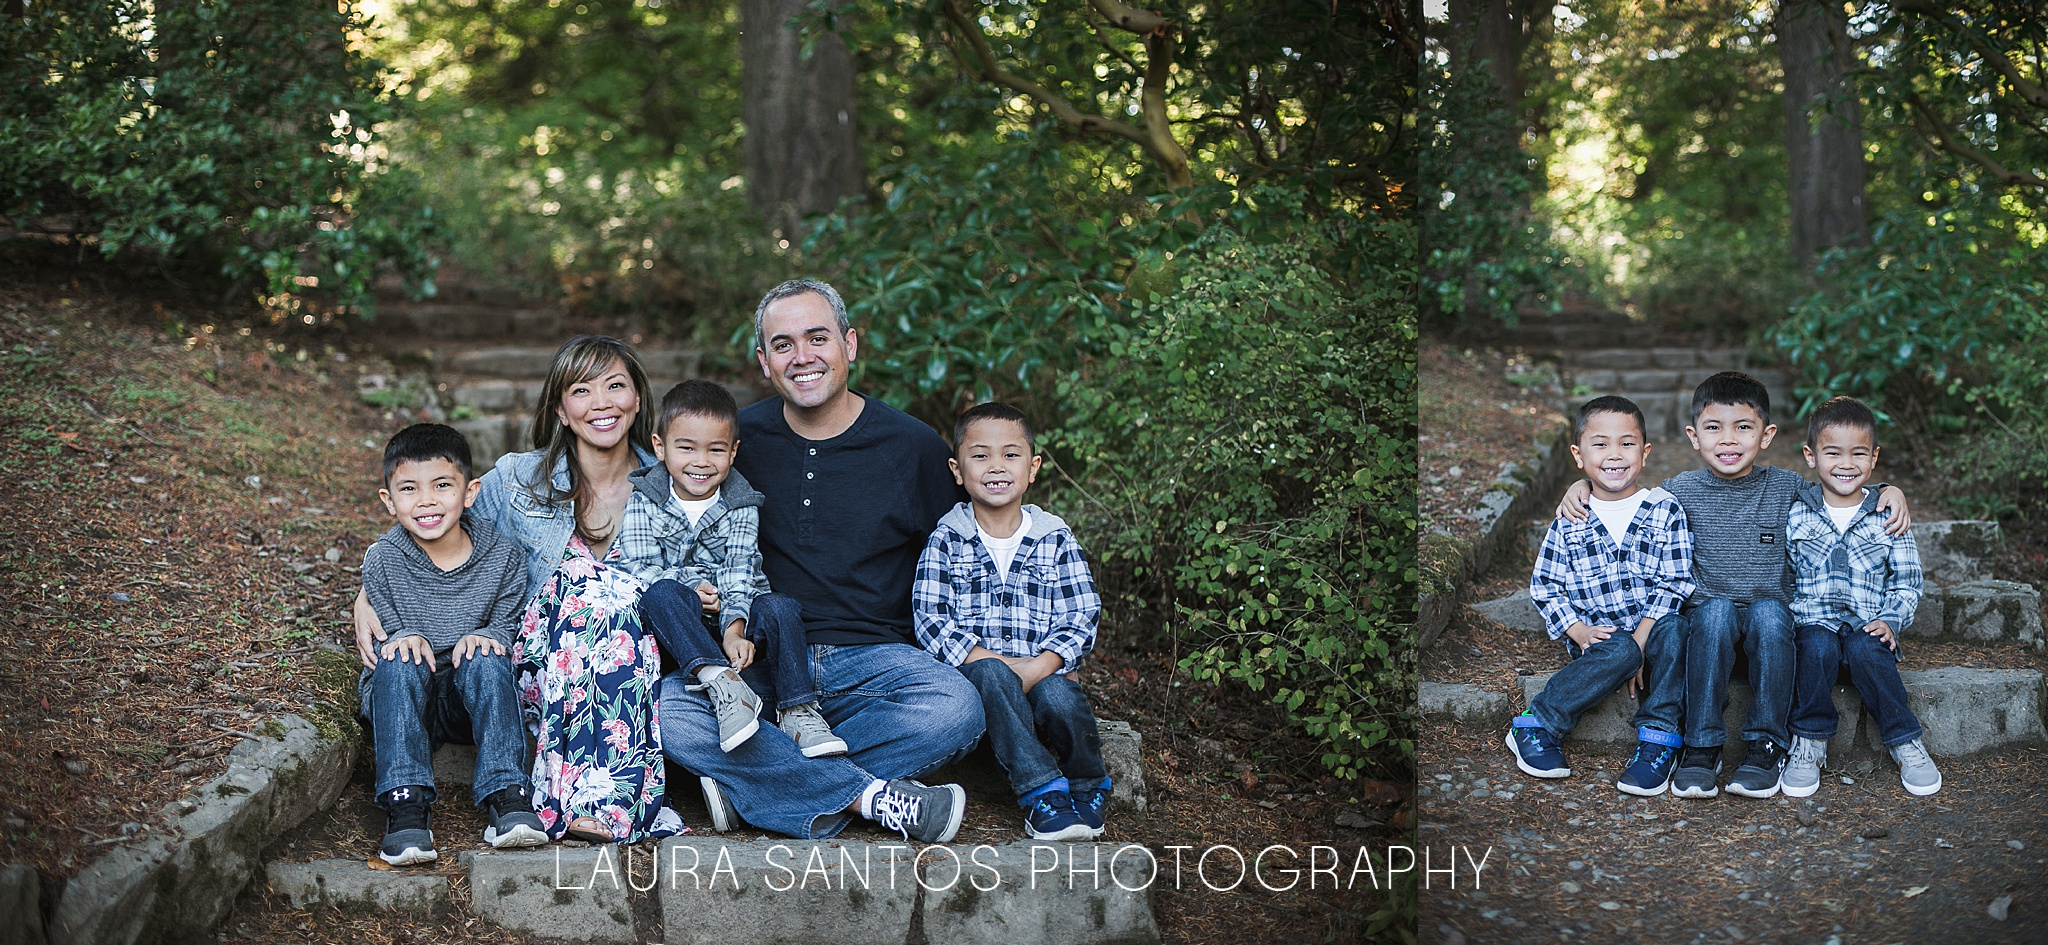 Laura Santos Photography Portland Oregon Family Photographer_0742.jpg